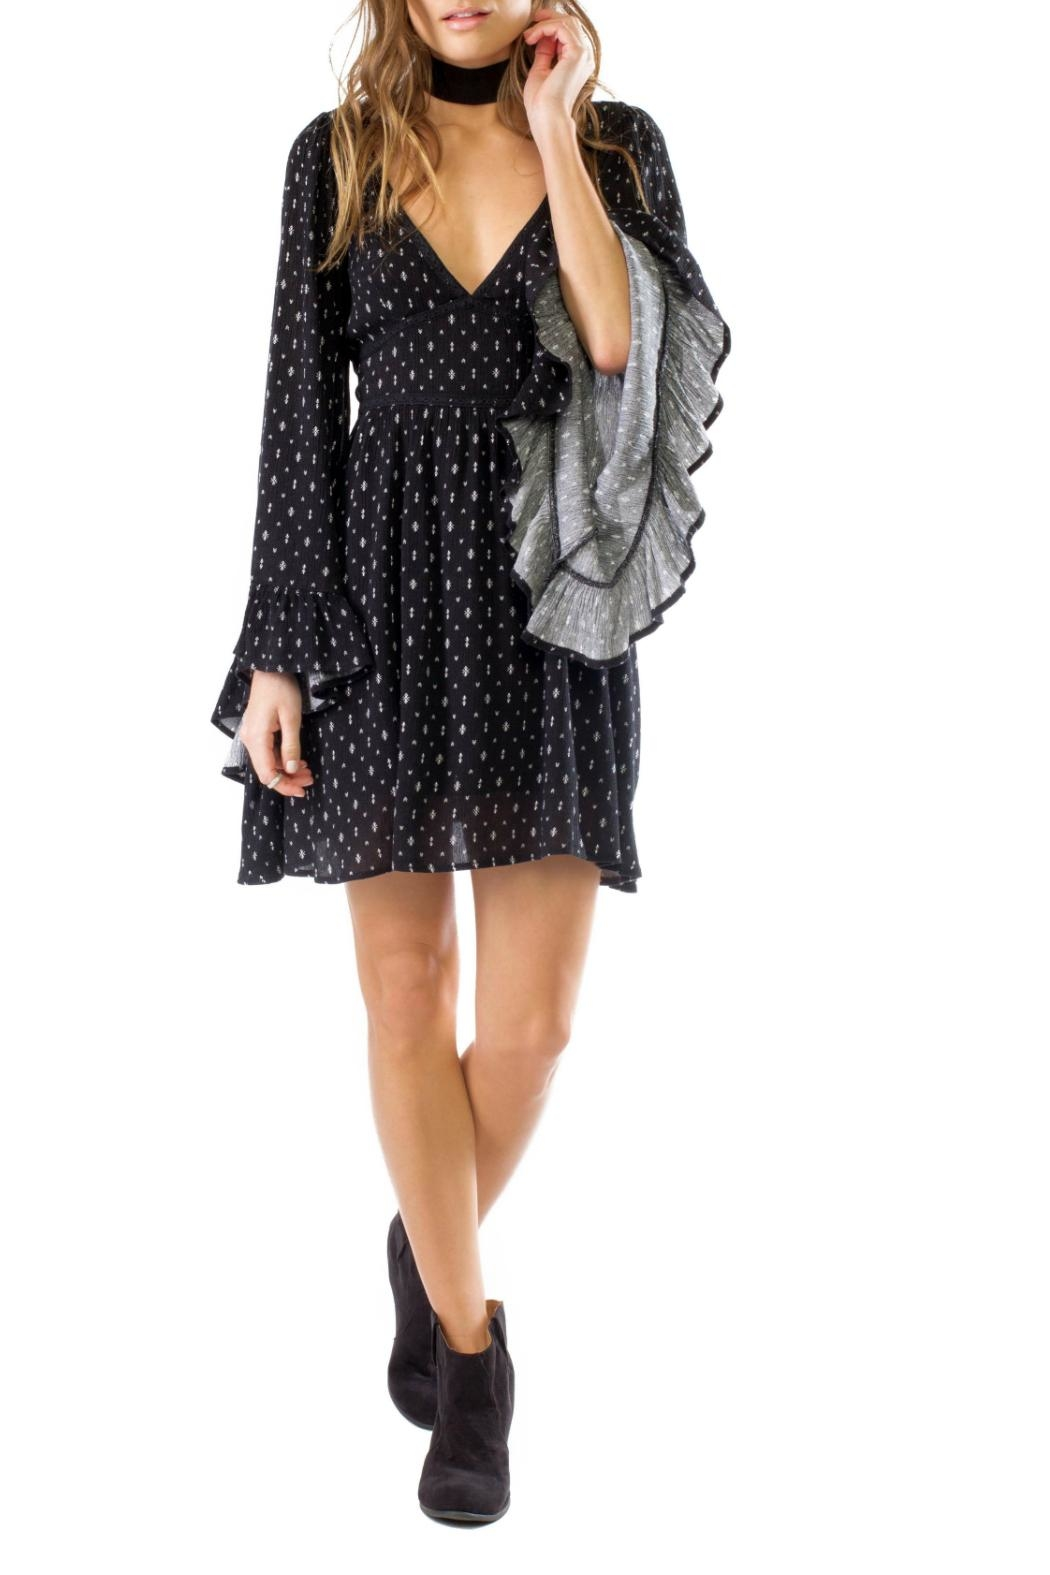 Anama Black Bell Sleeve Dress - Main Image